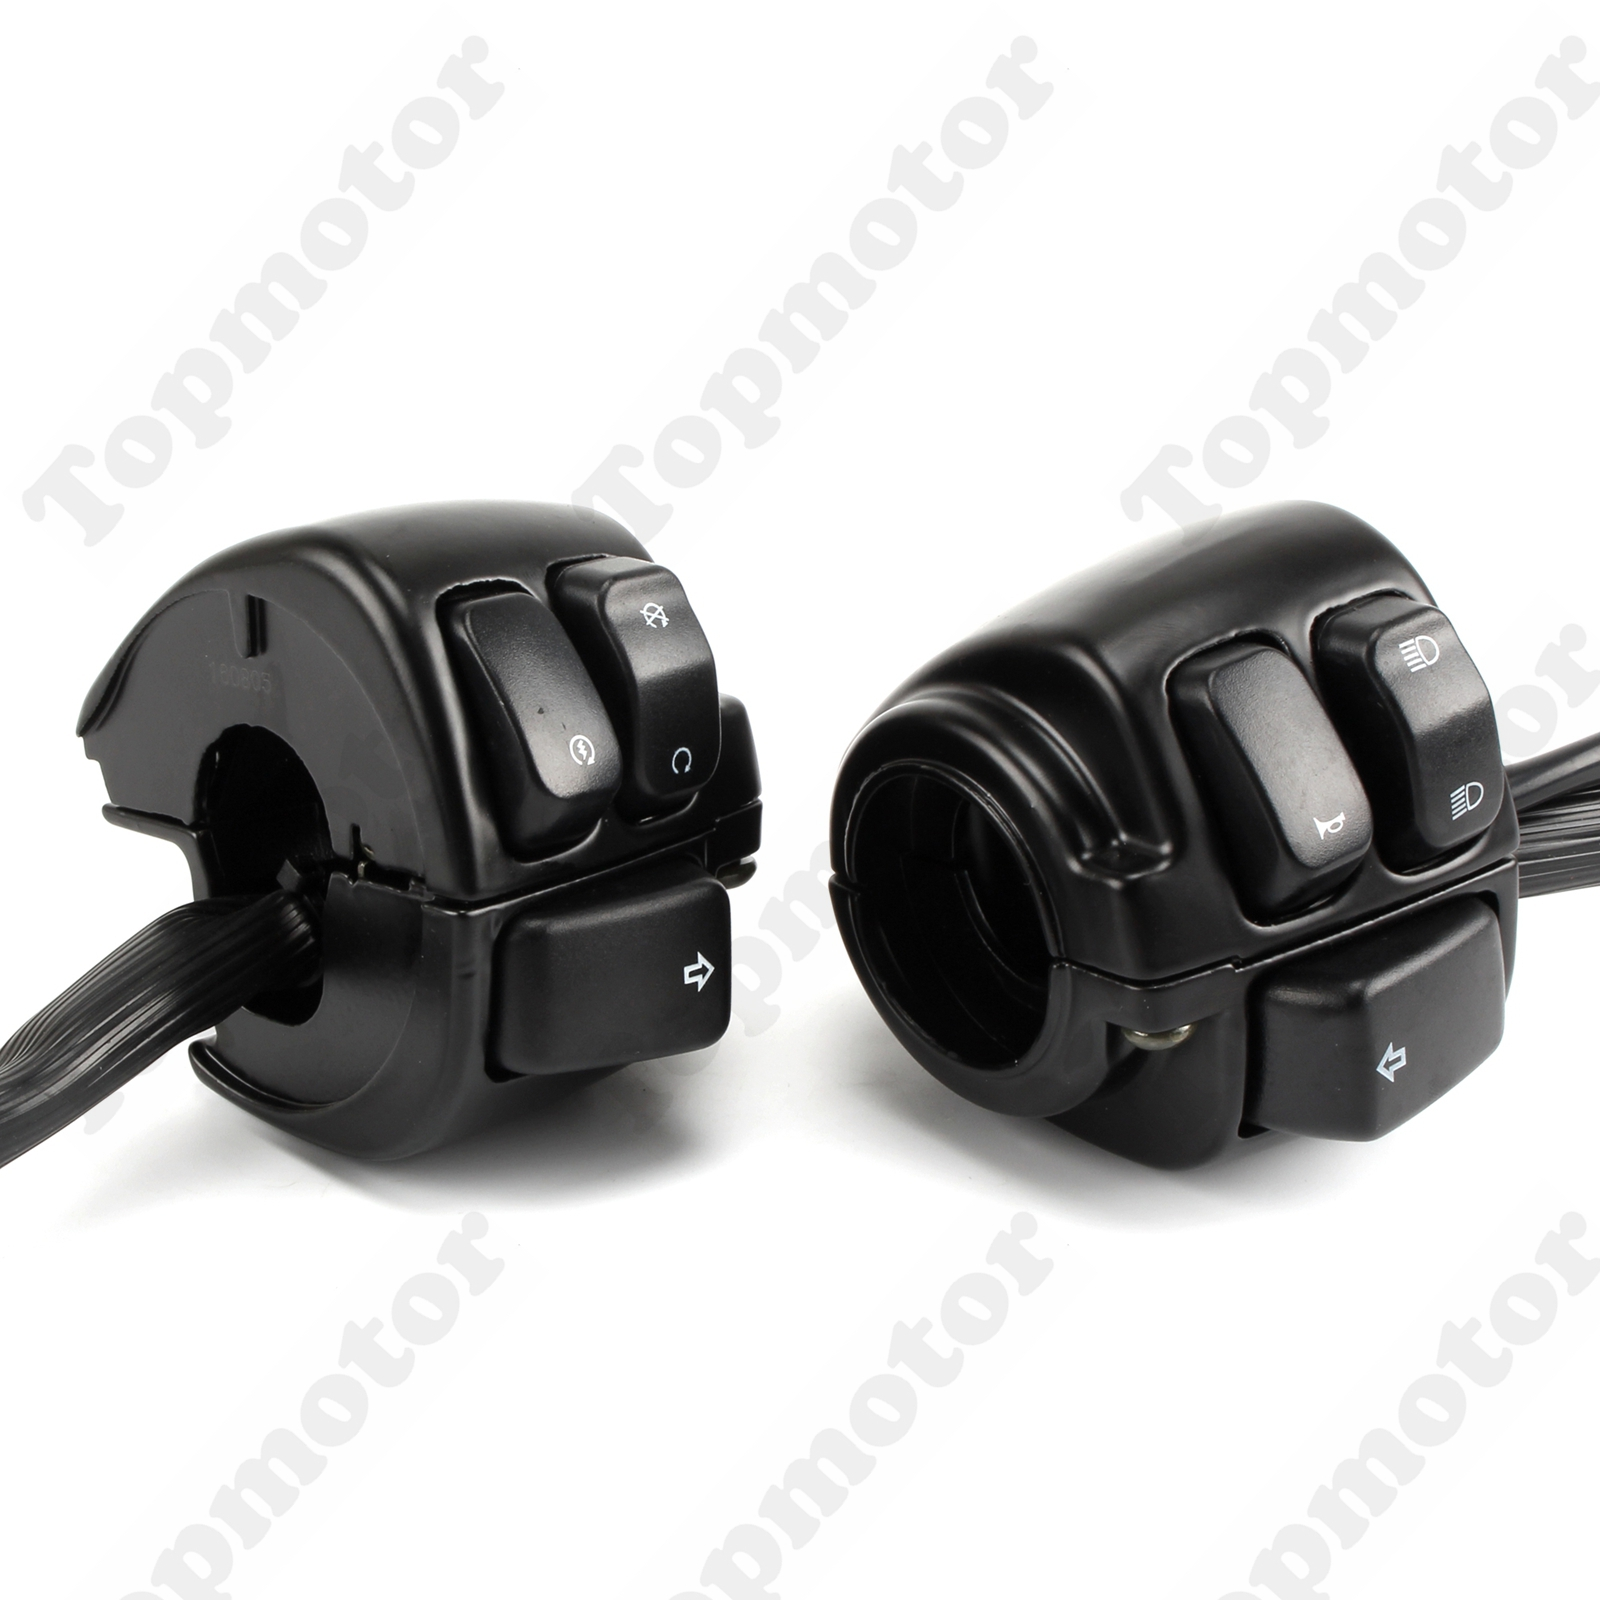 UNDEFINED Black 1 Motorbike Handlebar Switches Control Kit +Wiring Harness For Harley Sportster 883 XL Touring Cruise Control mtsooning timing cover and 1 derby cover for harley davidson xlh 883 sportster 1986 2004 xl 883 sportster custom 1998 2008 883l